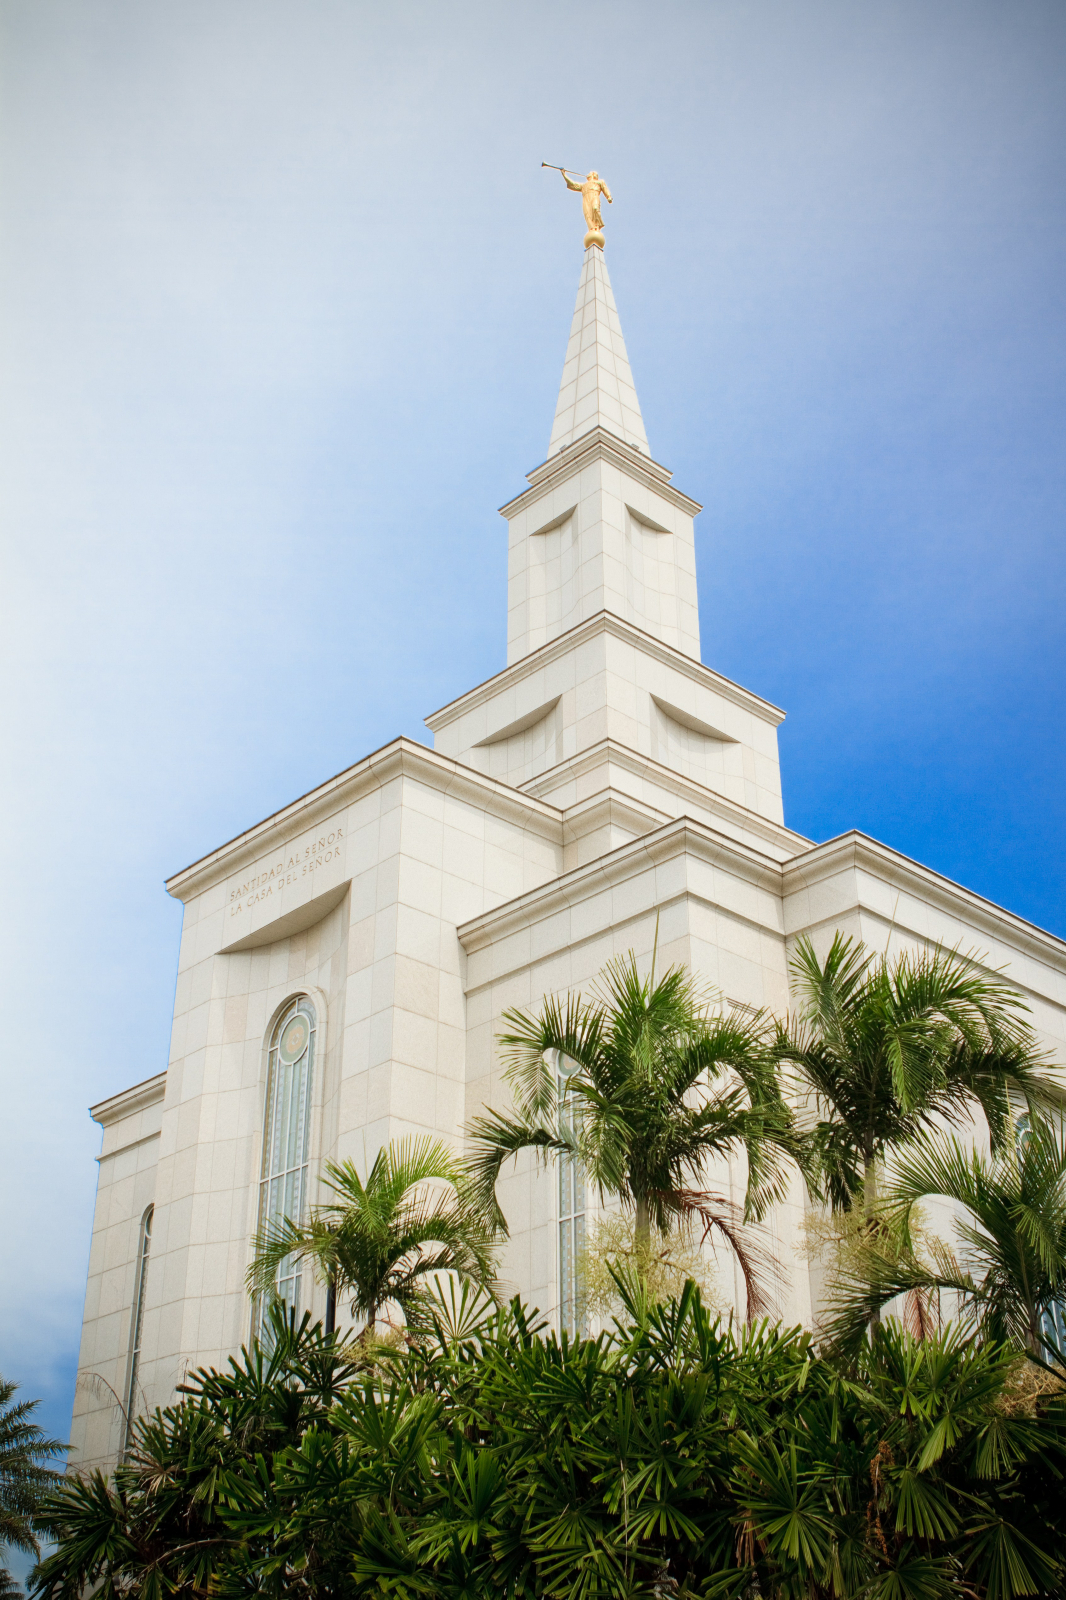 The Spire Of The Guayaquil Ecuador Temple